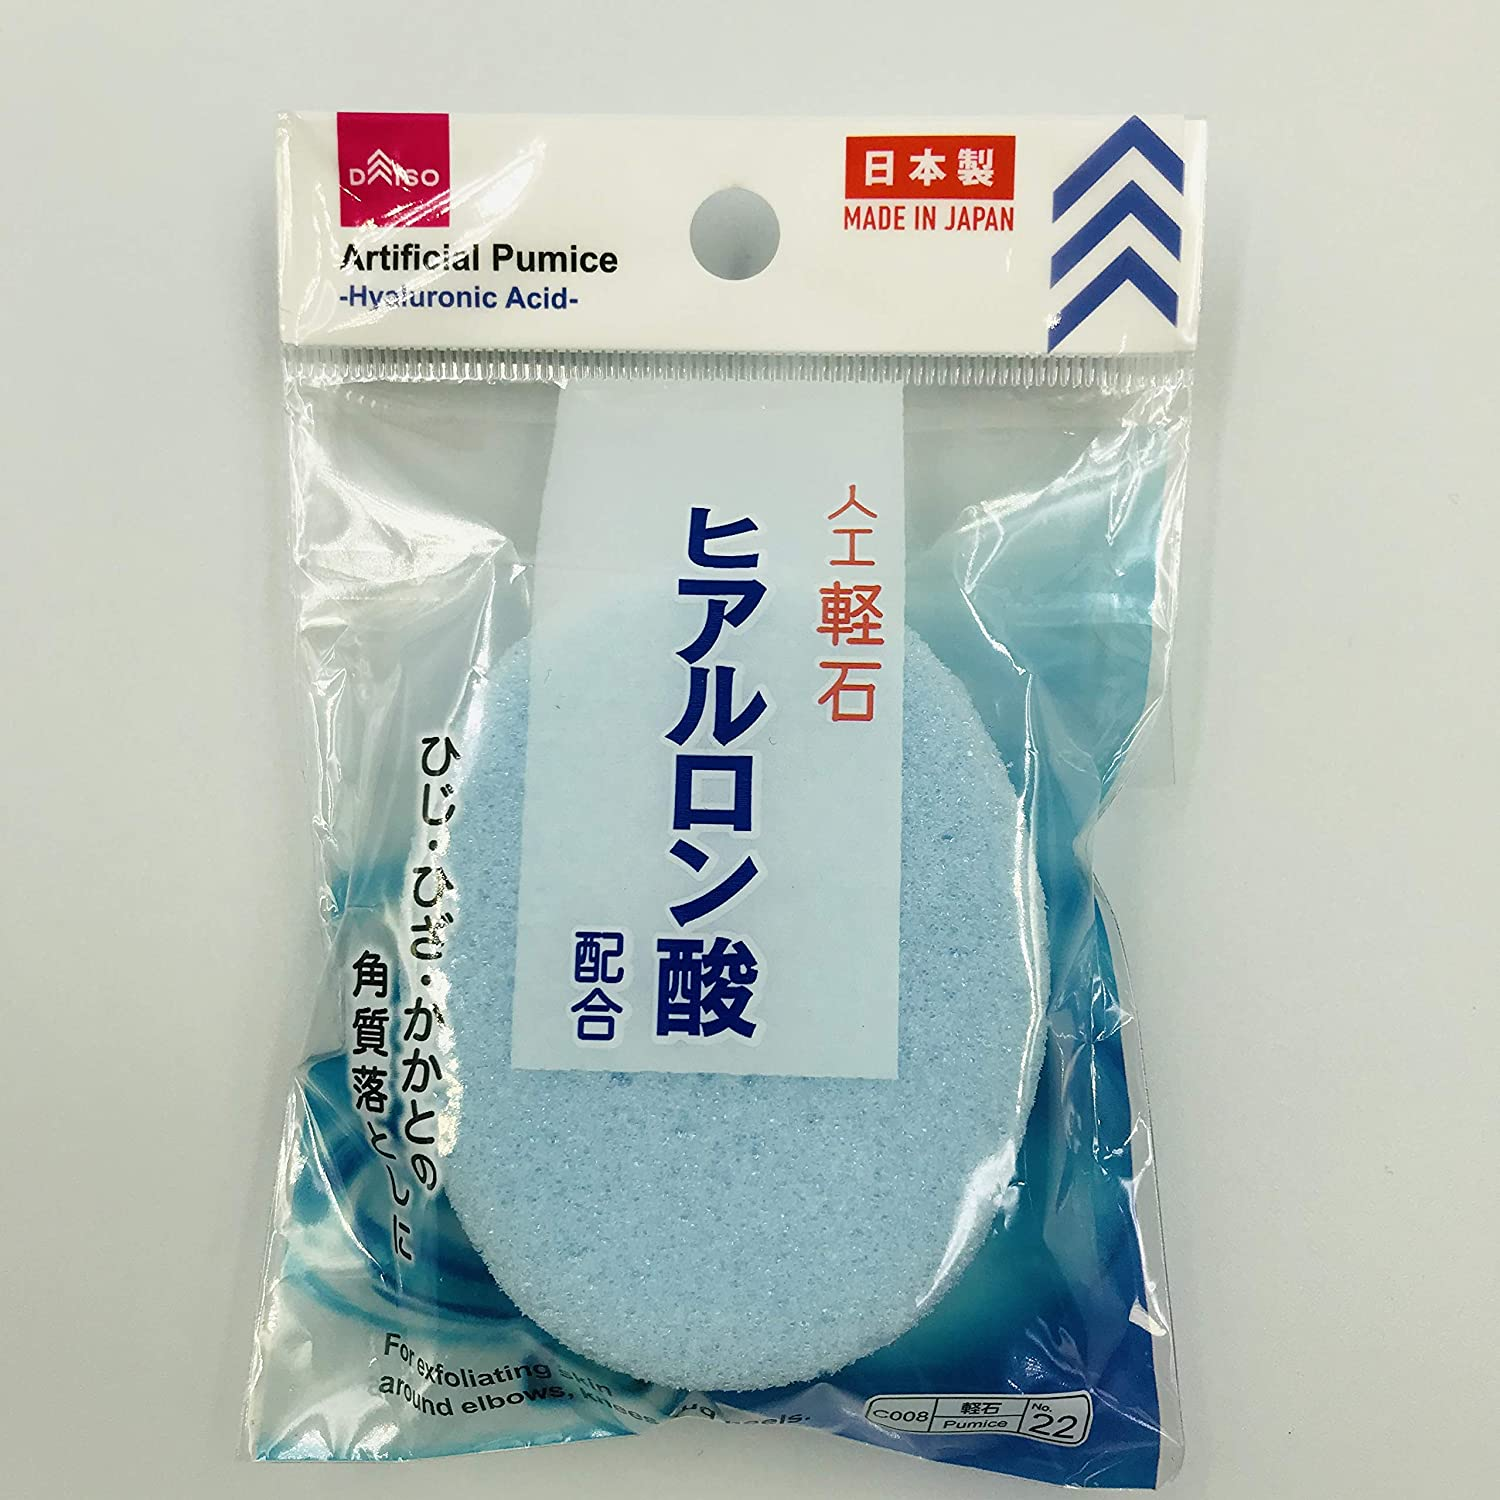 Artificial Pumice Stone Mail order cheap Made in skin Overseas parallel import regular item exfoliating For aroun Japan